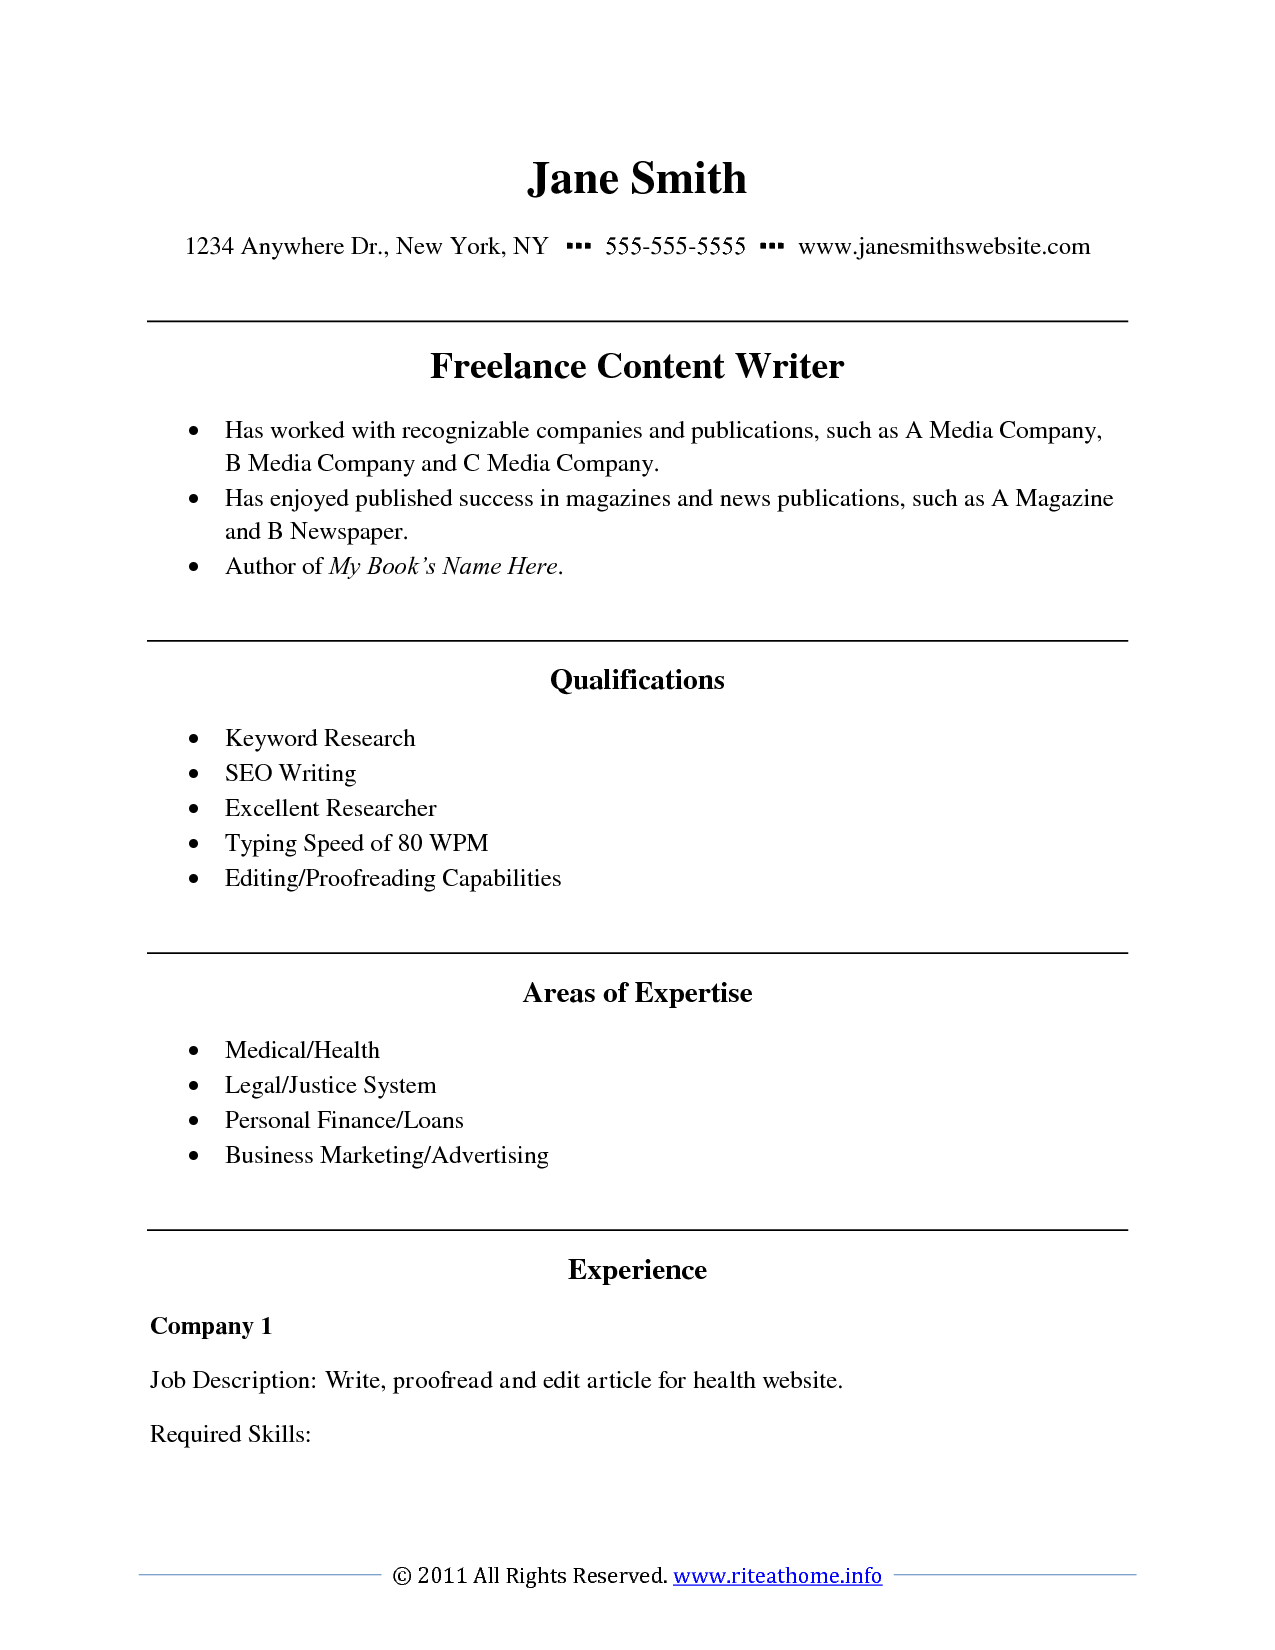 Resume Writers New York writing sample resume resume cv cover – Medical Writer Job Description